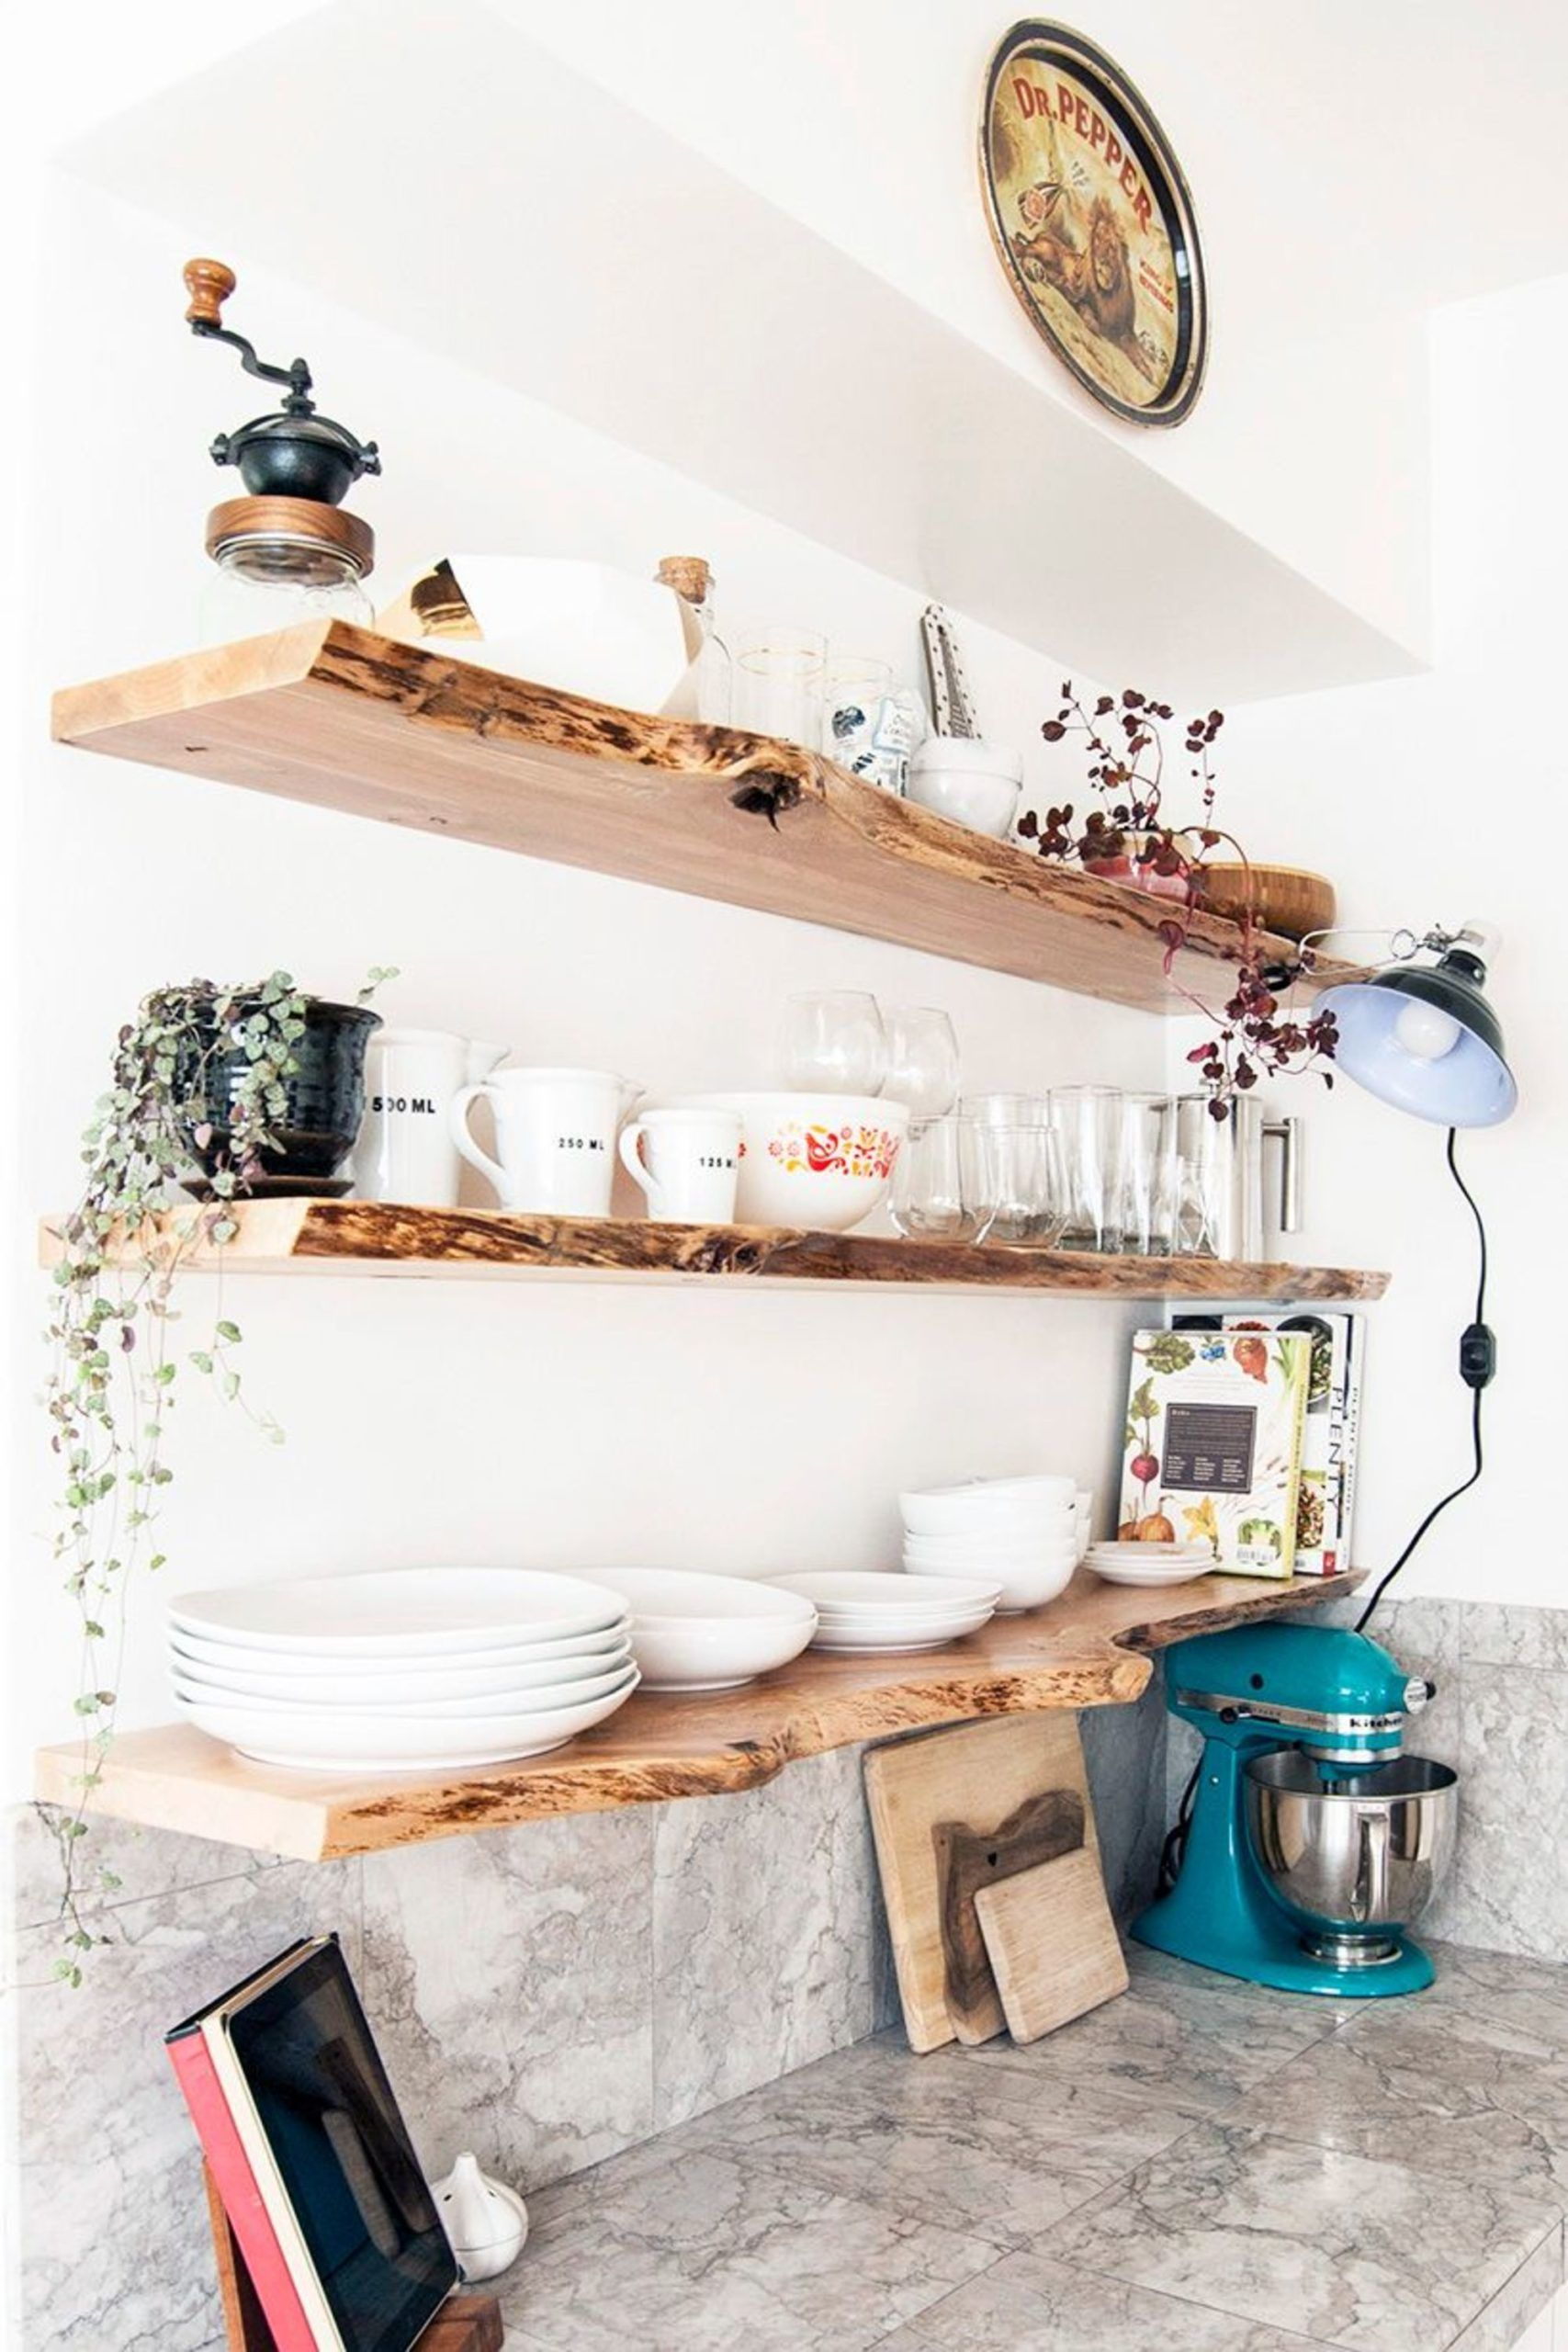 Diy Küchenregal Küchenregal Holz Vintage Skandinavisch Grafik #grafik #kuchenregal #skandinavisch #vintage | Kitchens Live Edge, Floating Shelves Diy, Live Edge Shelves